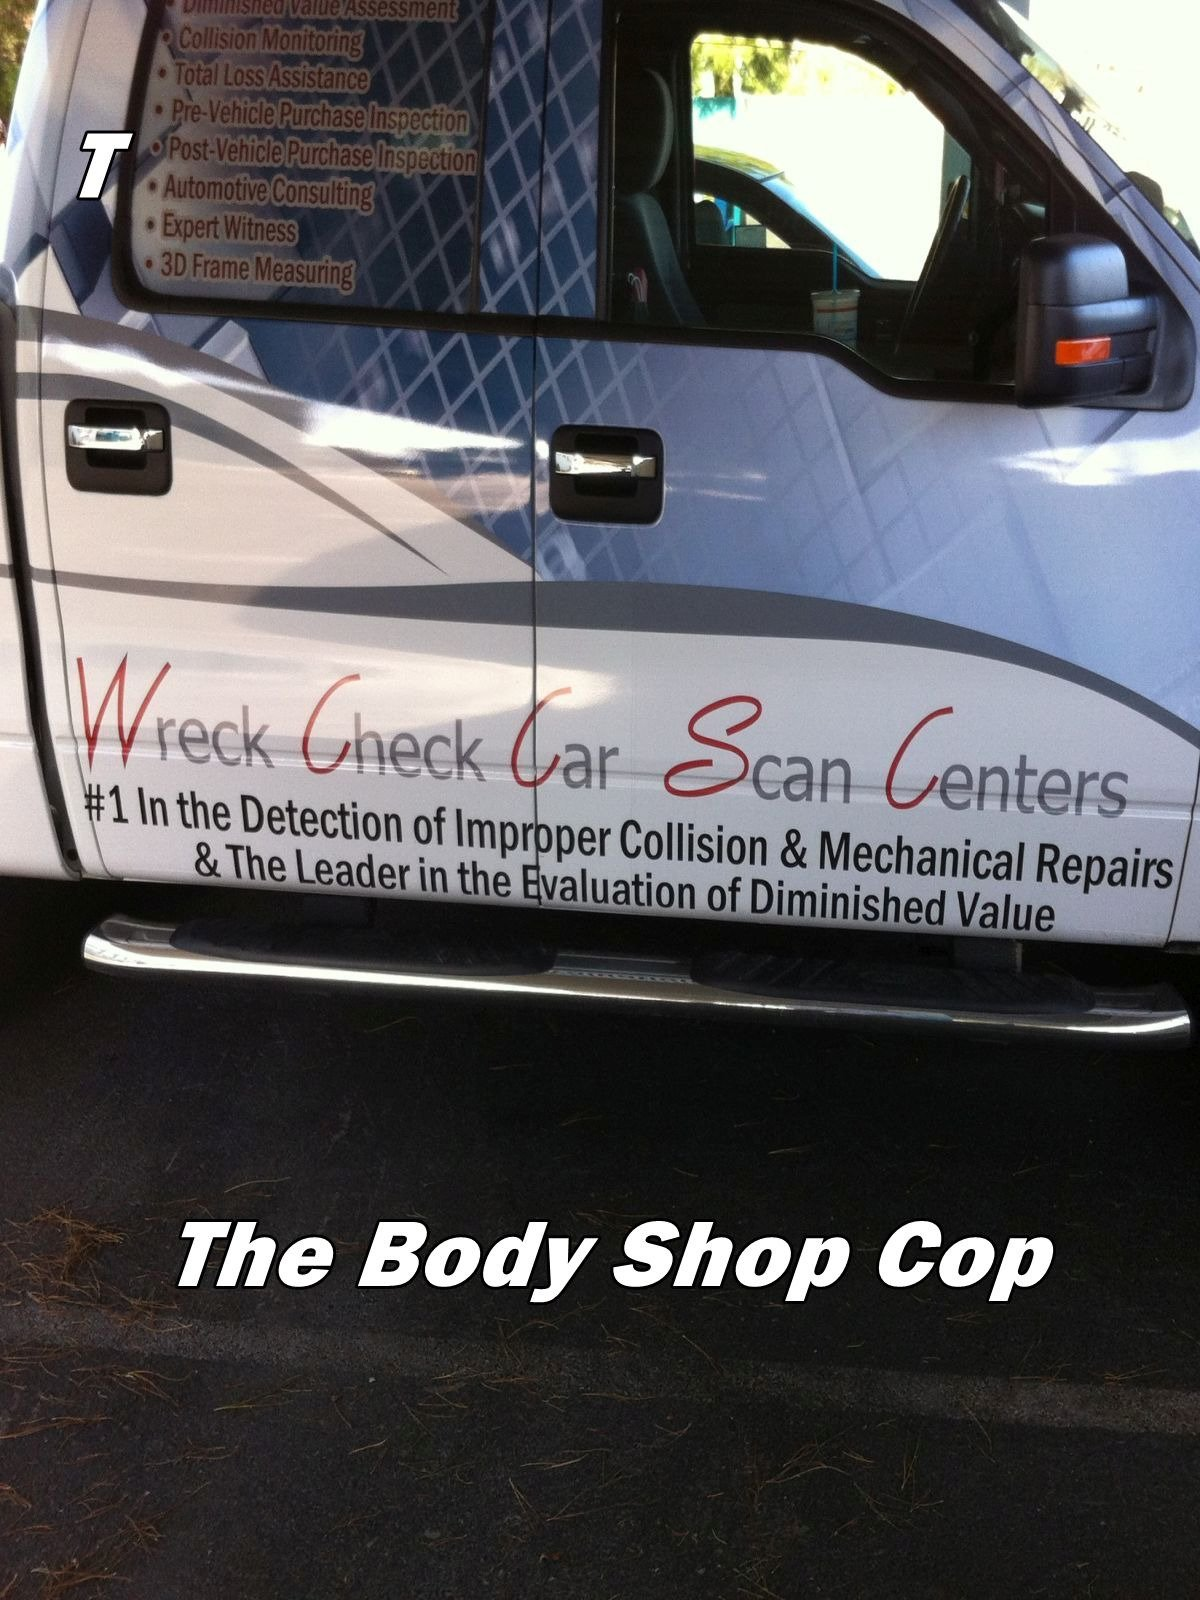 The Body Shop Cop